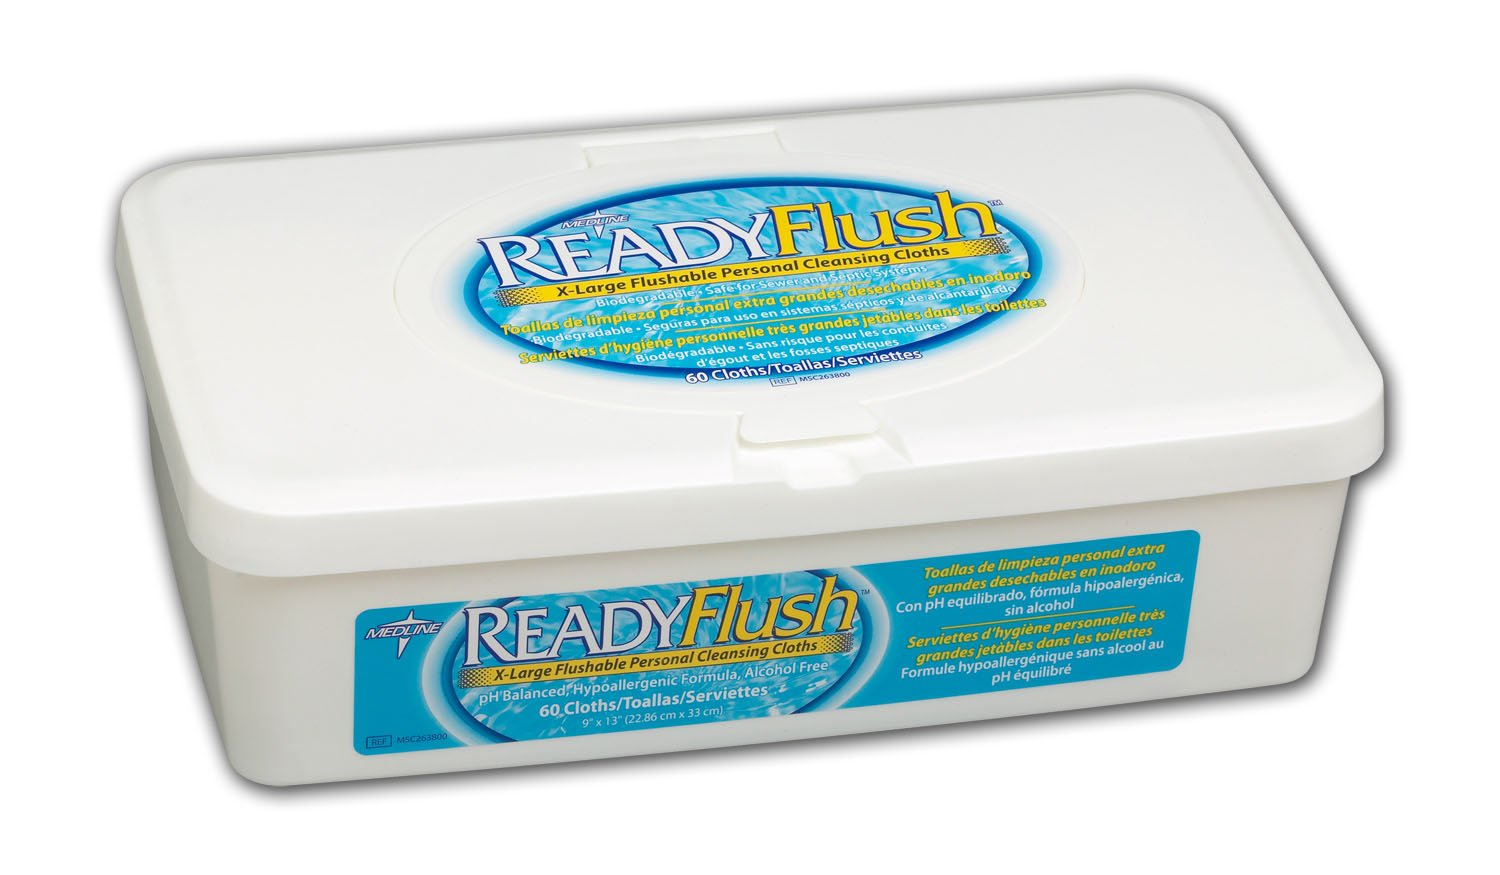 Amazon.com: Readyflush Scented Wipes 9inchx13inch 60/tub - Case Of 9 Tubs: Health & Personal Care